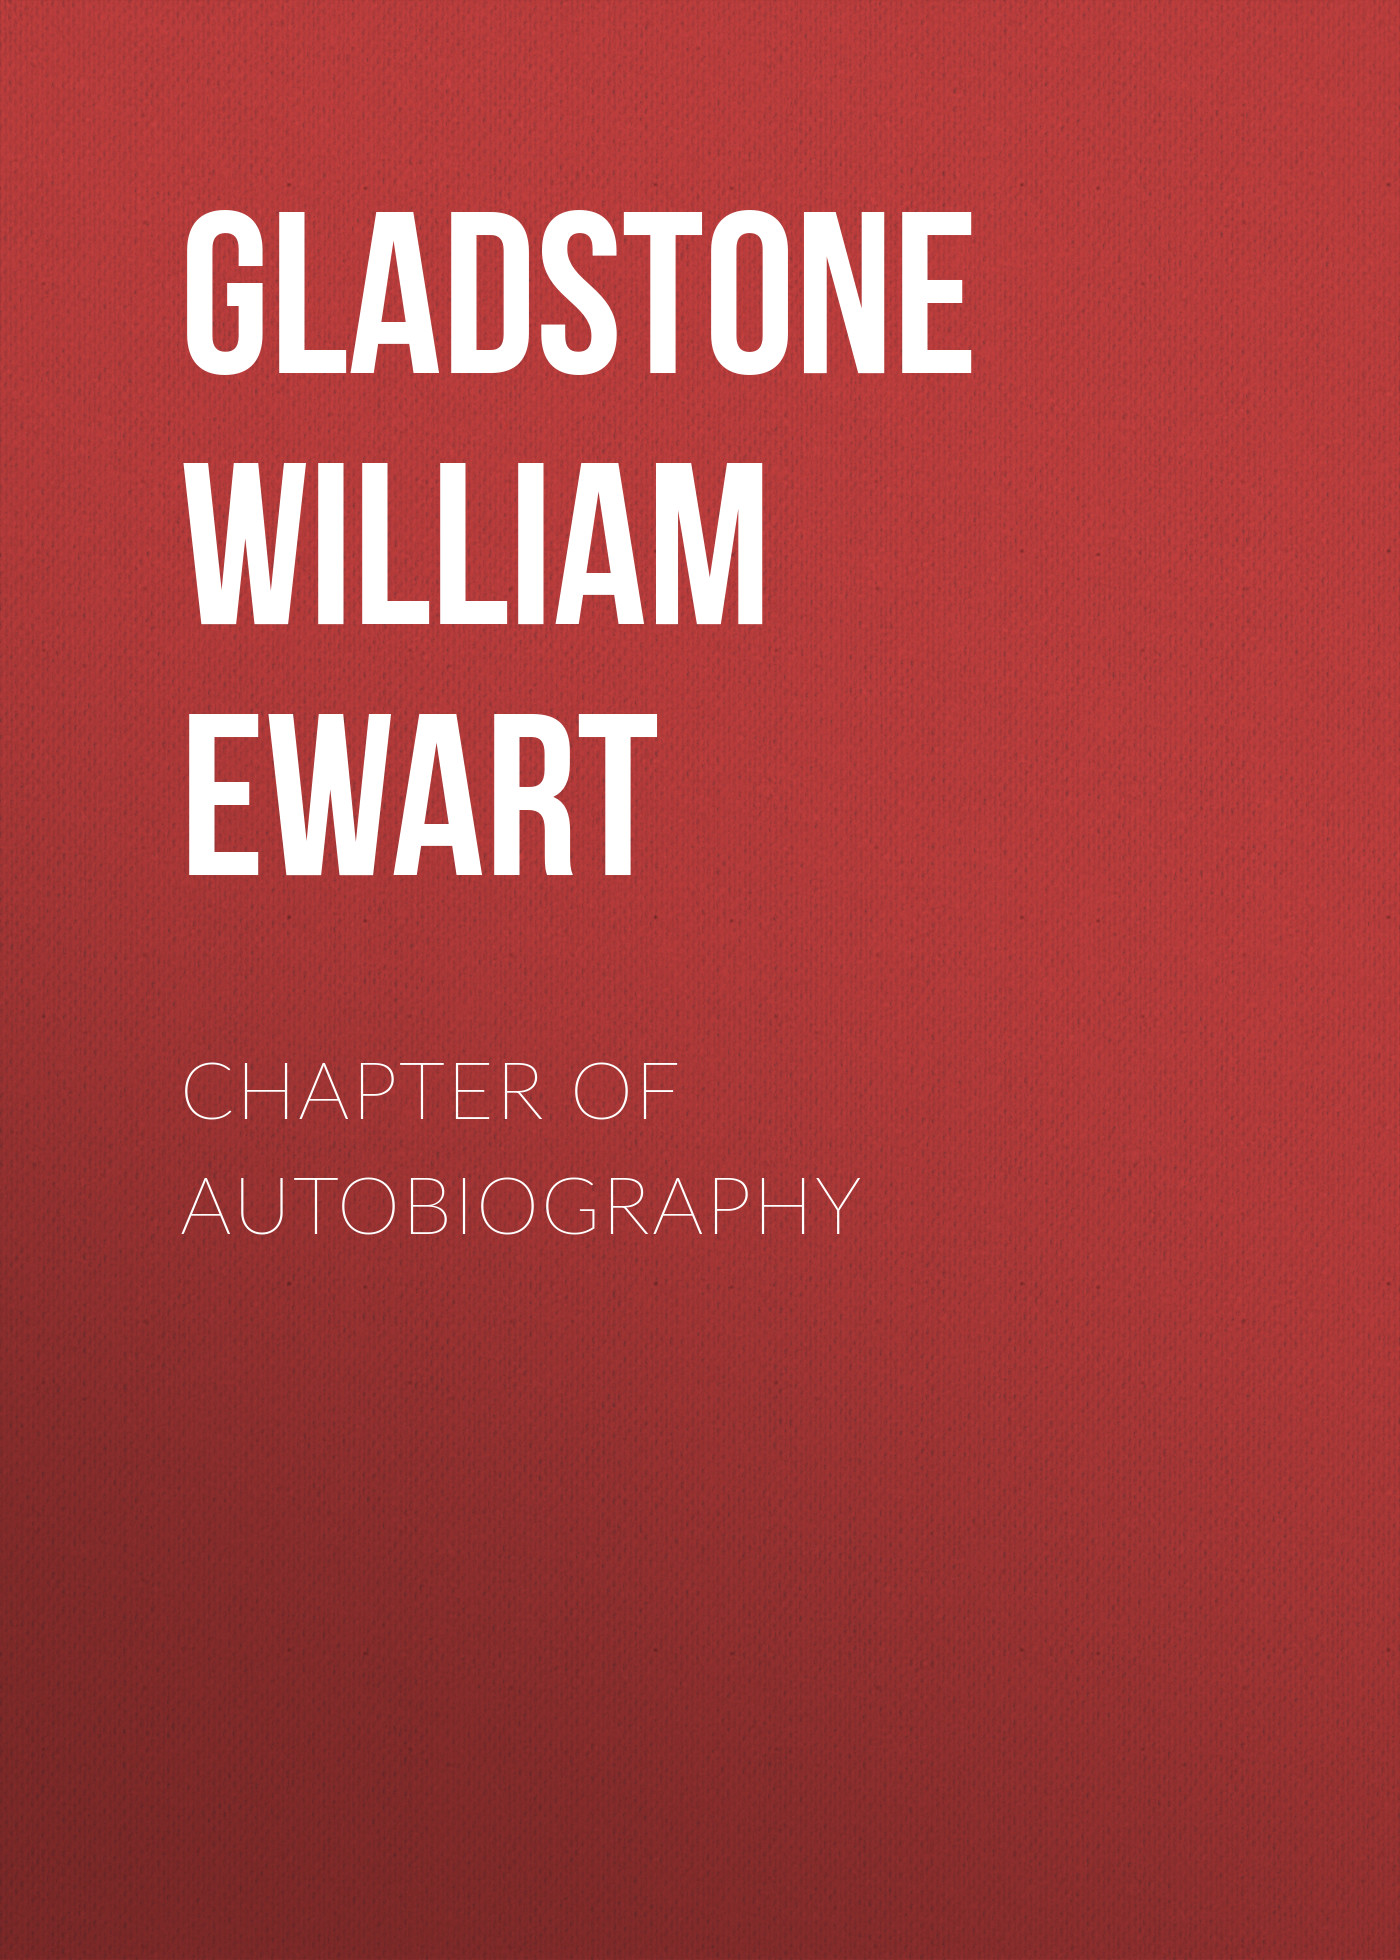 Gladstone William Ewart Chapter of Autobiography gladstone william ewart studies on homer and the homeric age vol 3 of 3